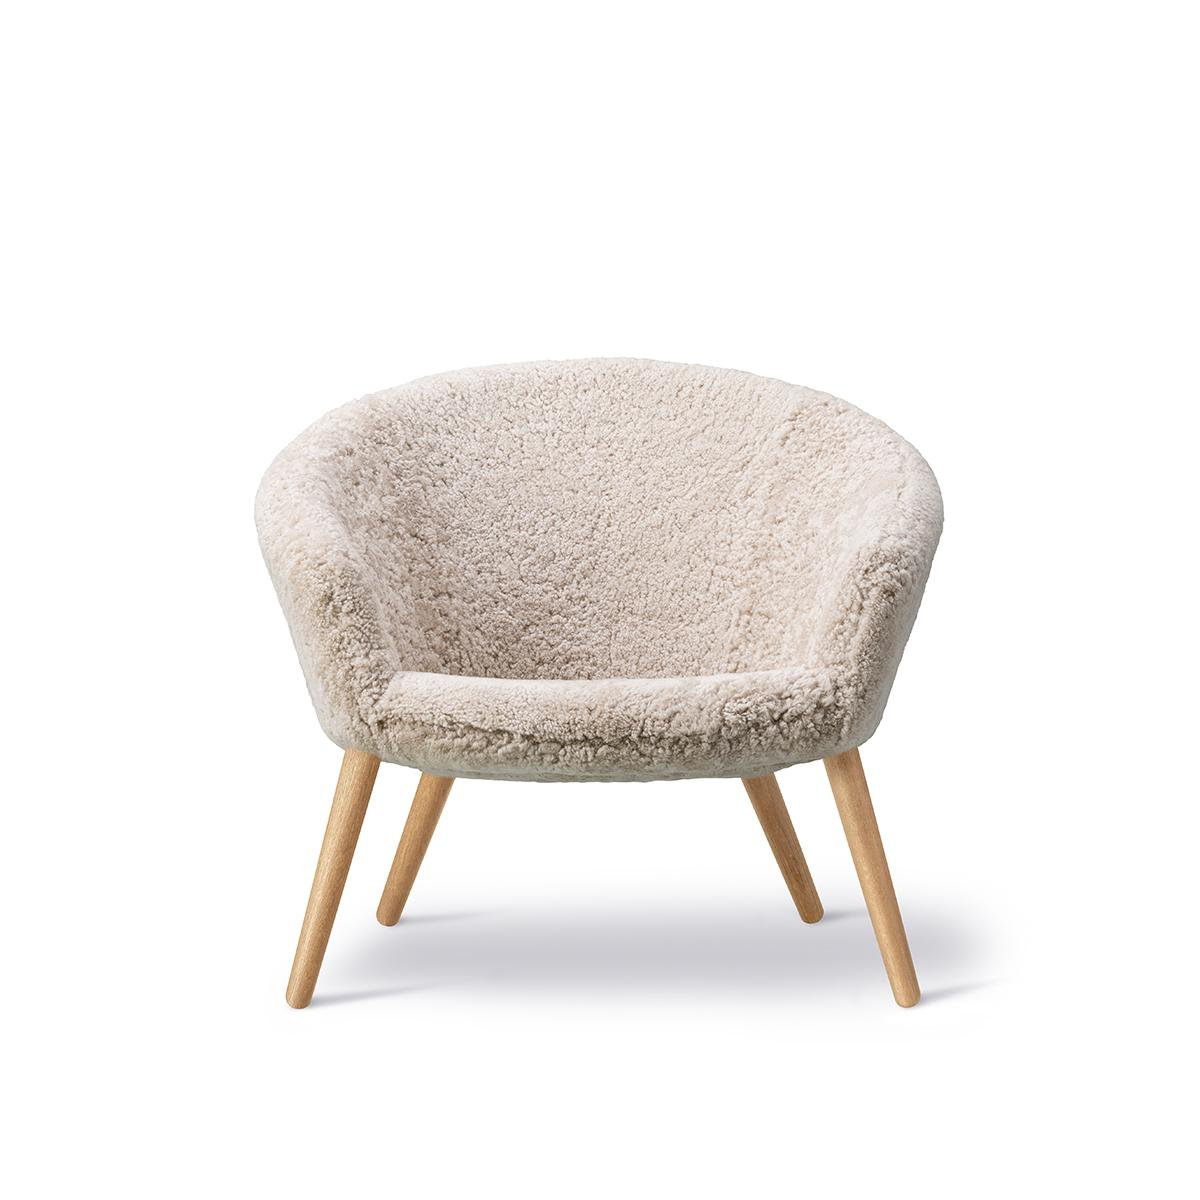 NDEasyChair_0004_ND_2631_sheepskin_oak_v1